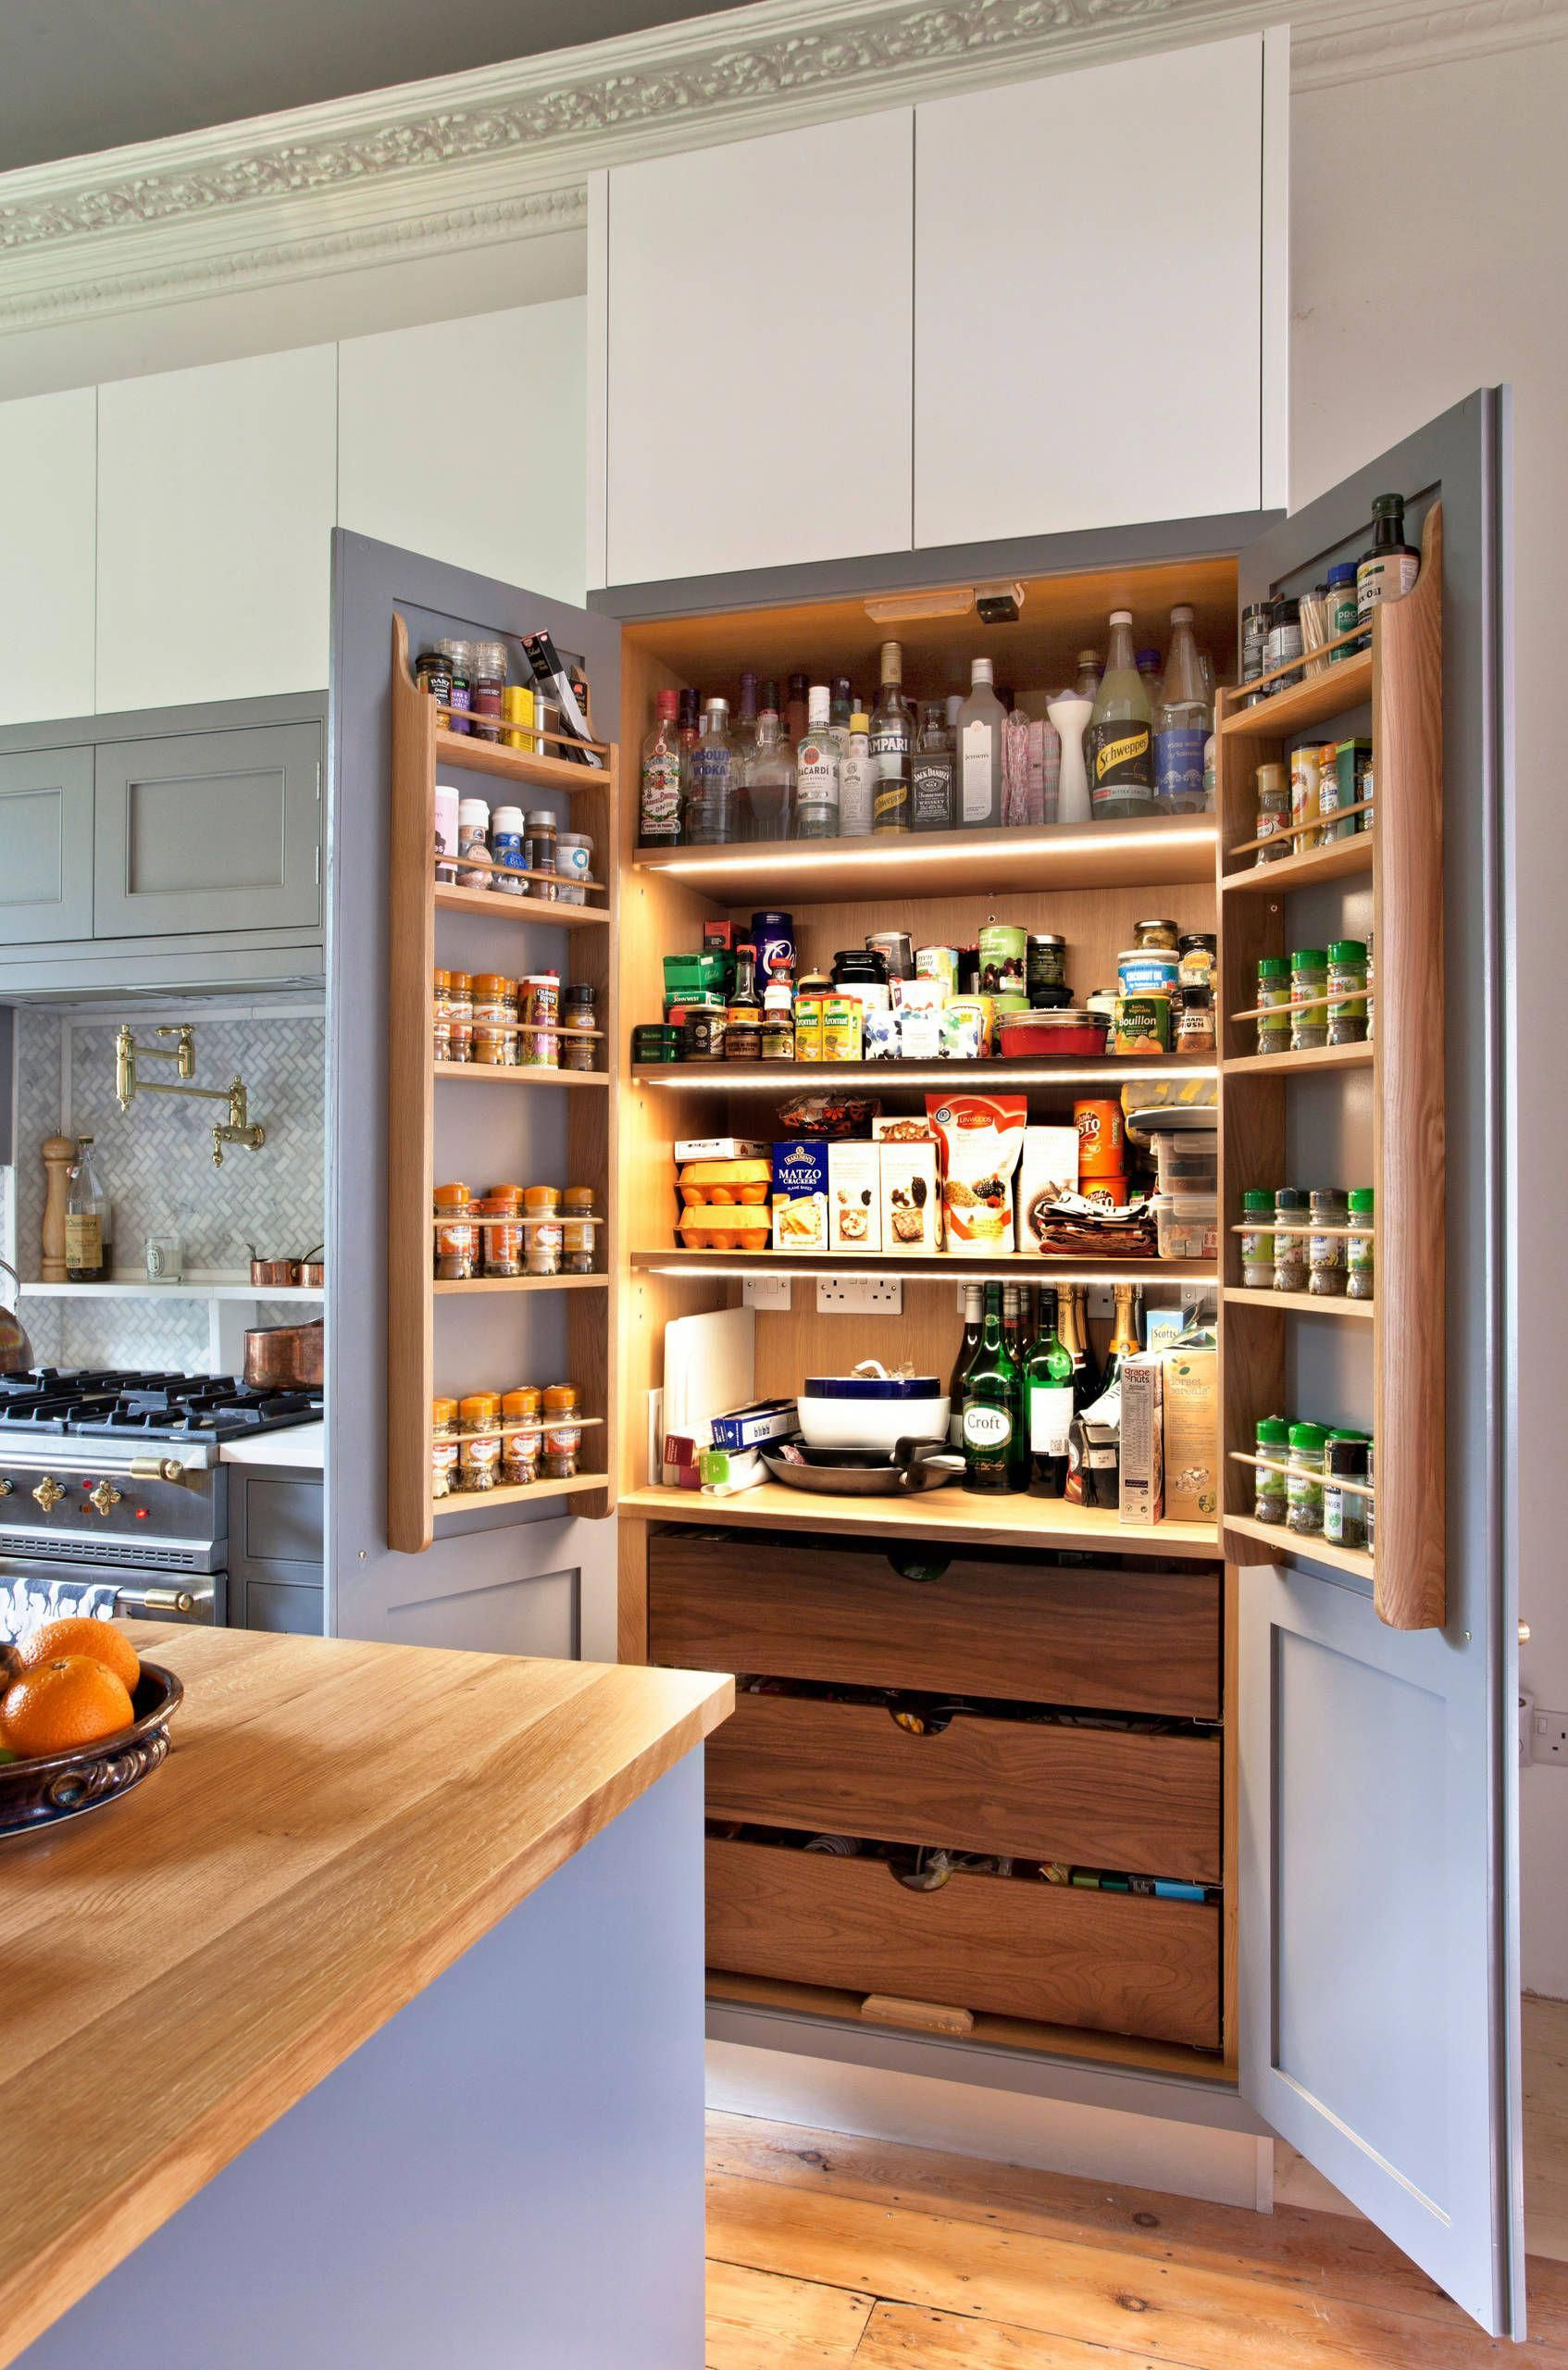 Kitchen Cabinet Styles And Trends Wall Cabinets Today Encompass The Ceiling Using High Up Area Kitchen Pantry Design Kitchen Food Storage Diy Kitchen Storage